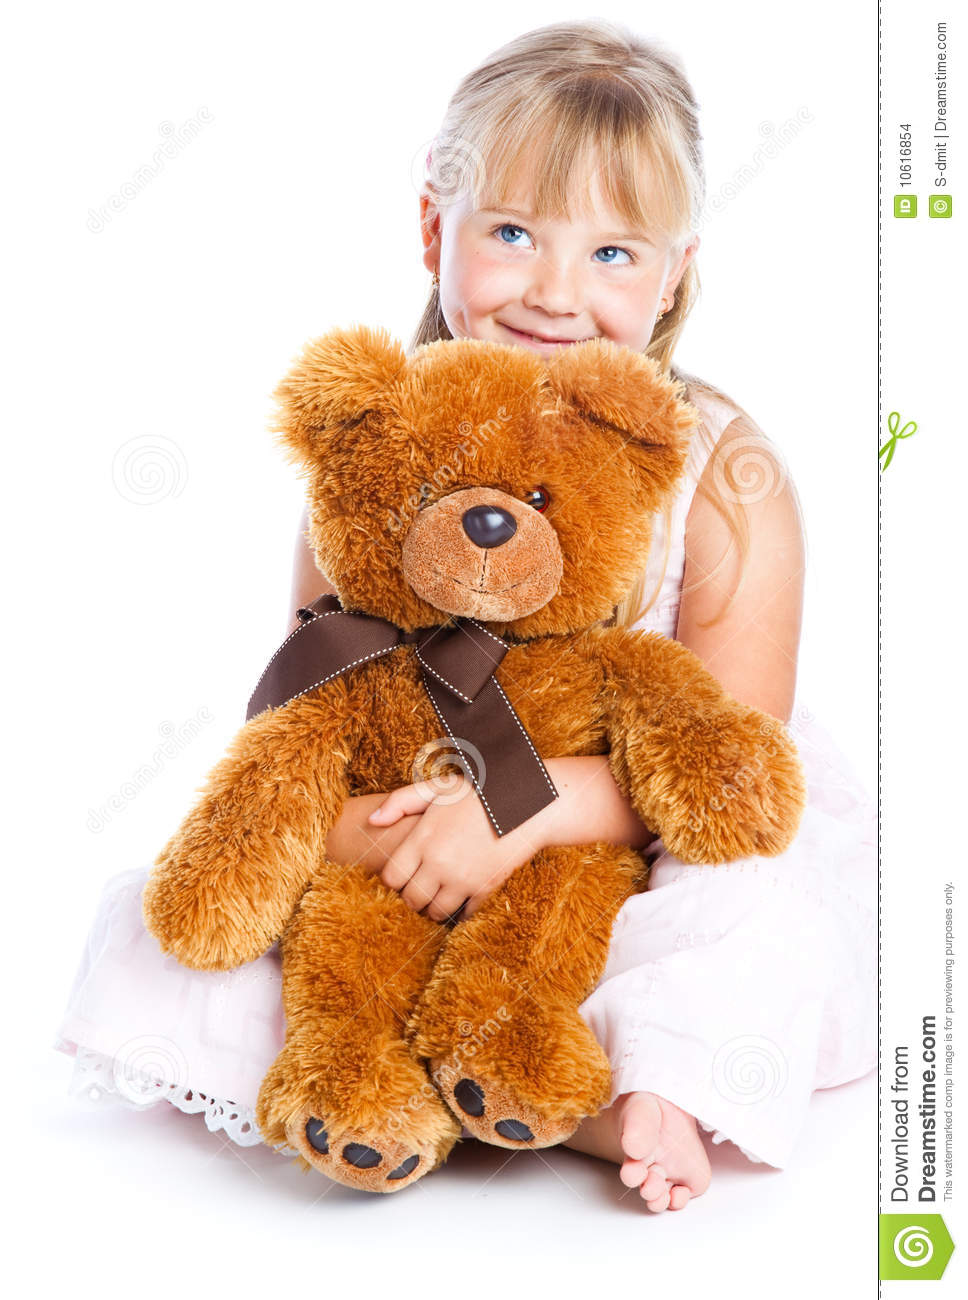 girl playing with teddy bear porn